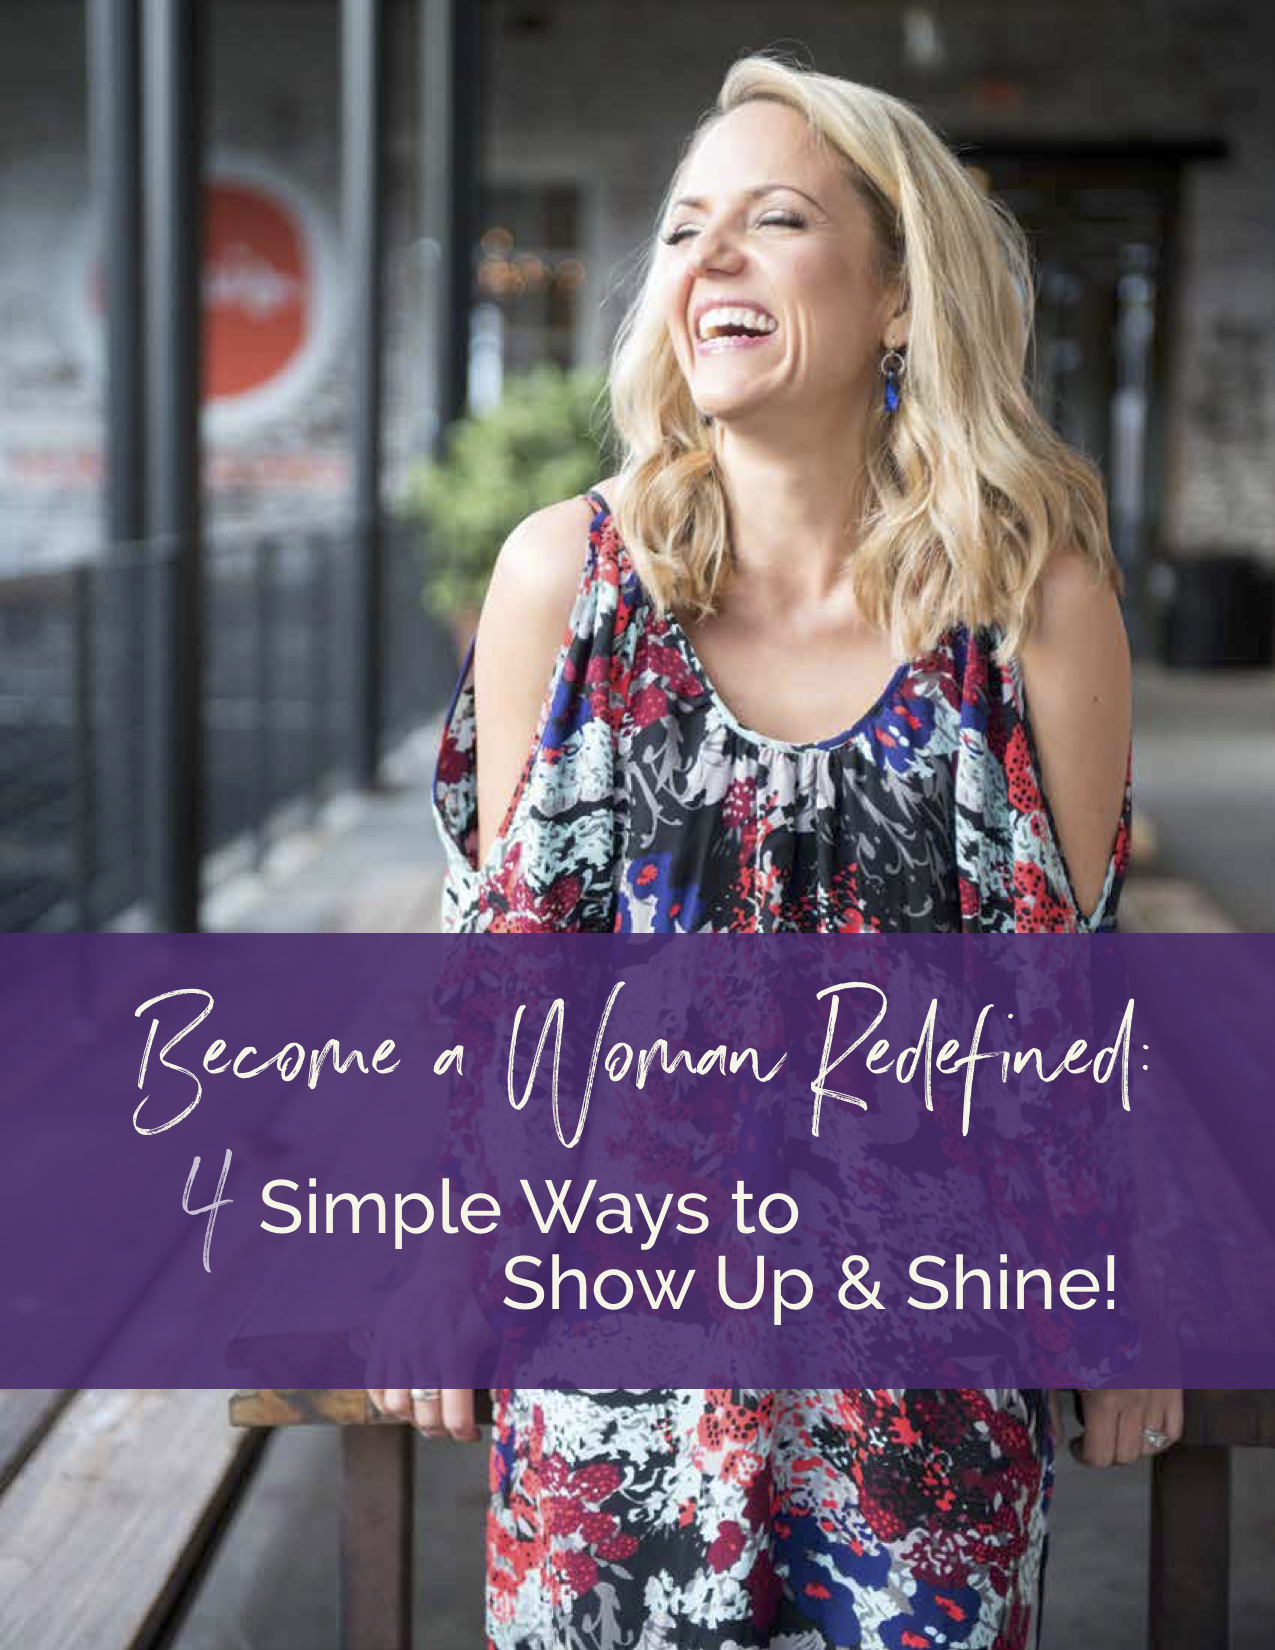 Low Resolution - Become a Woman Redefined eBook.jpg